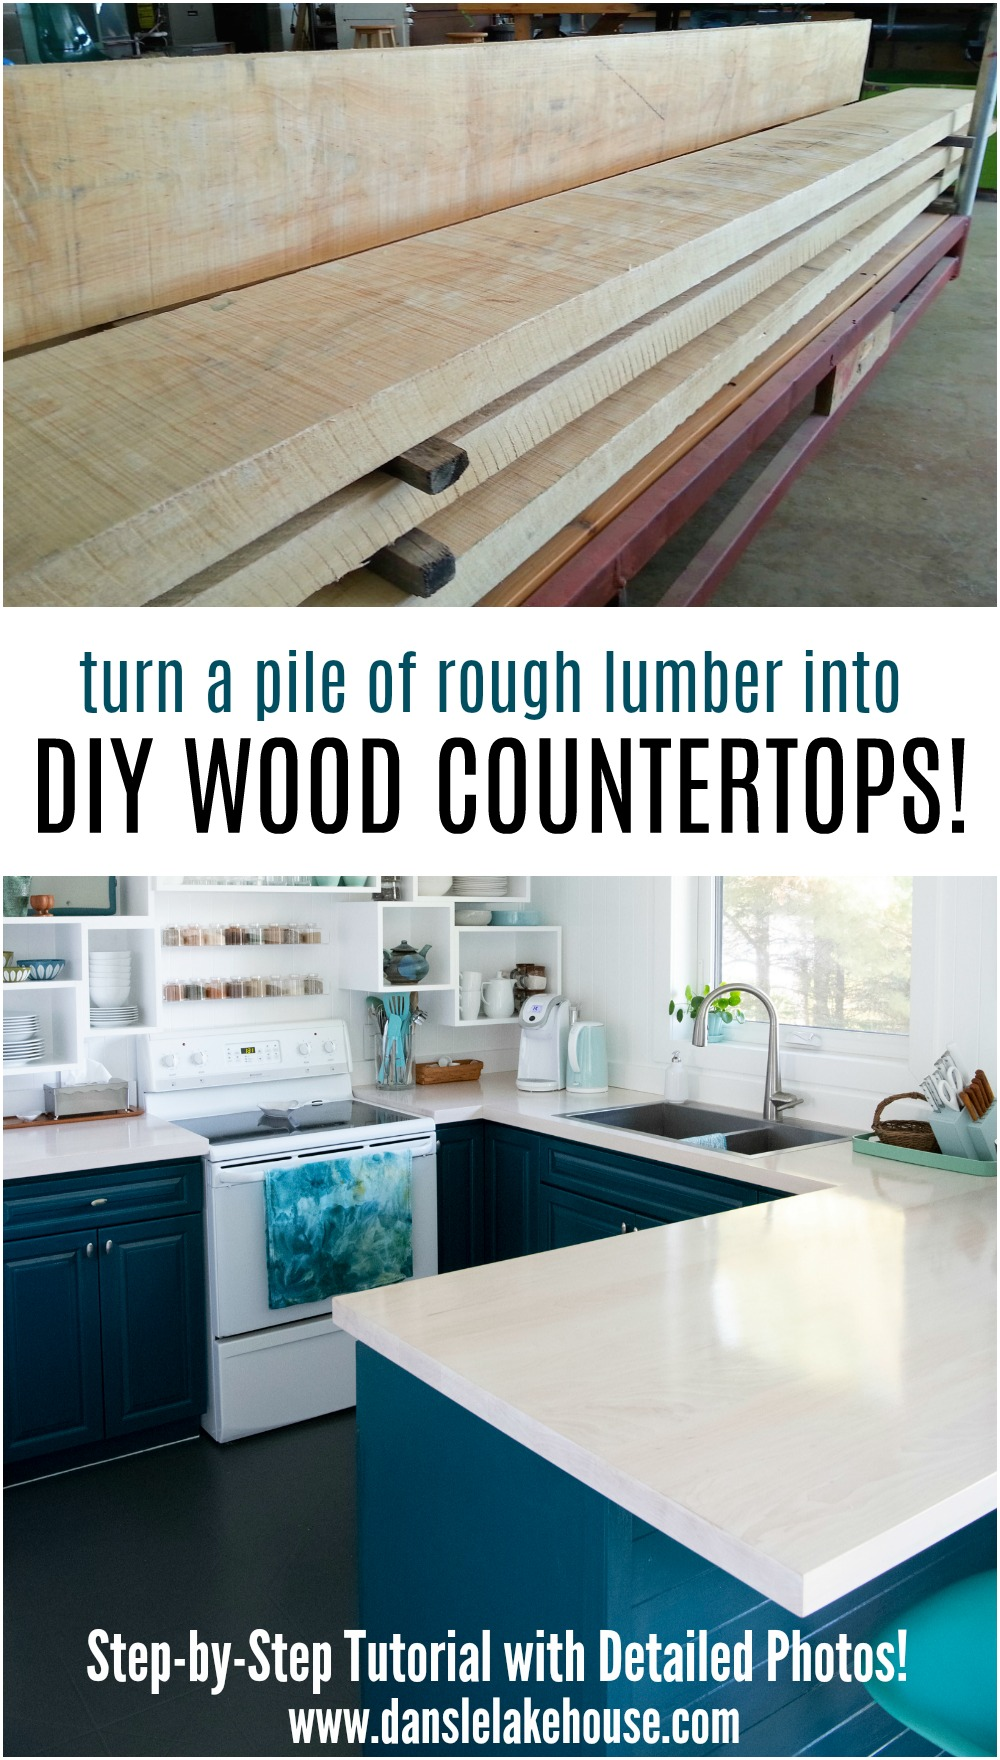 Solid Maple DIY Wood Countertops - Learn How to Build Wood Counters